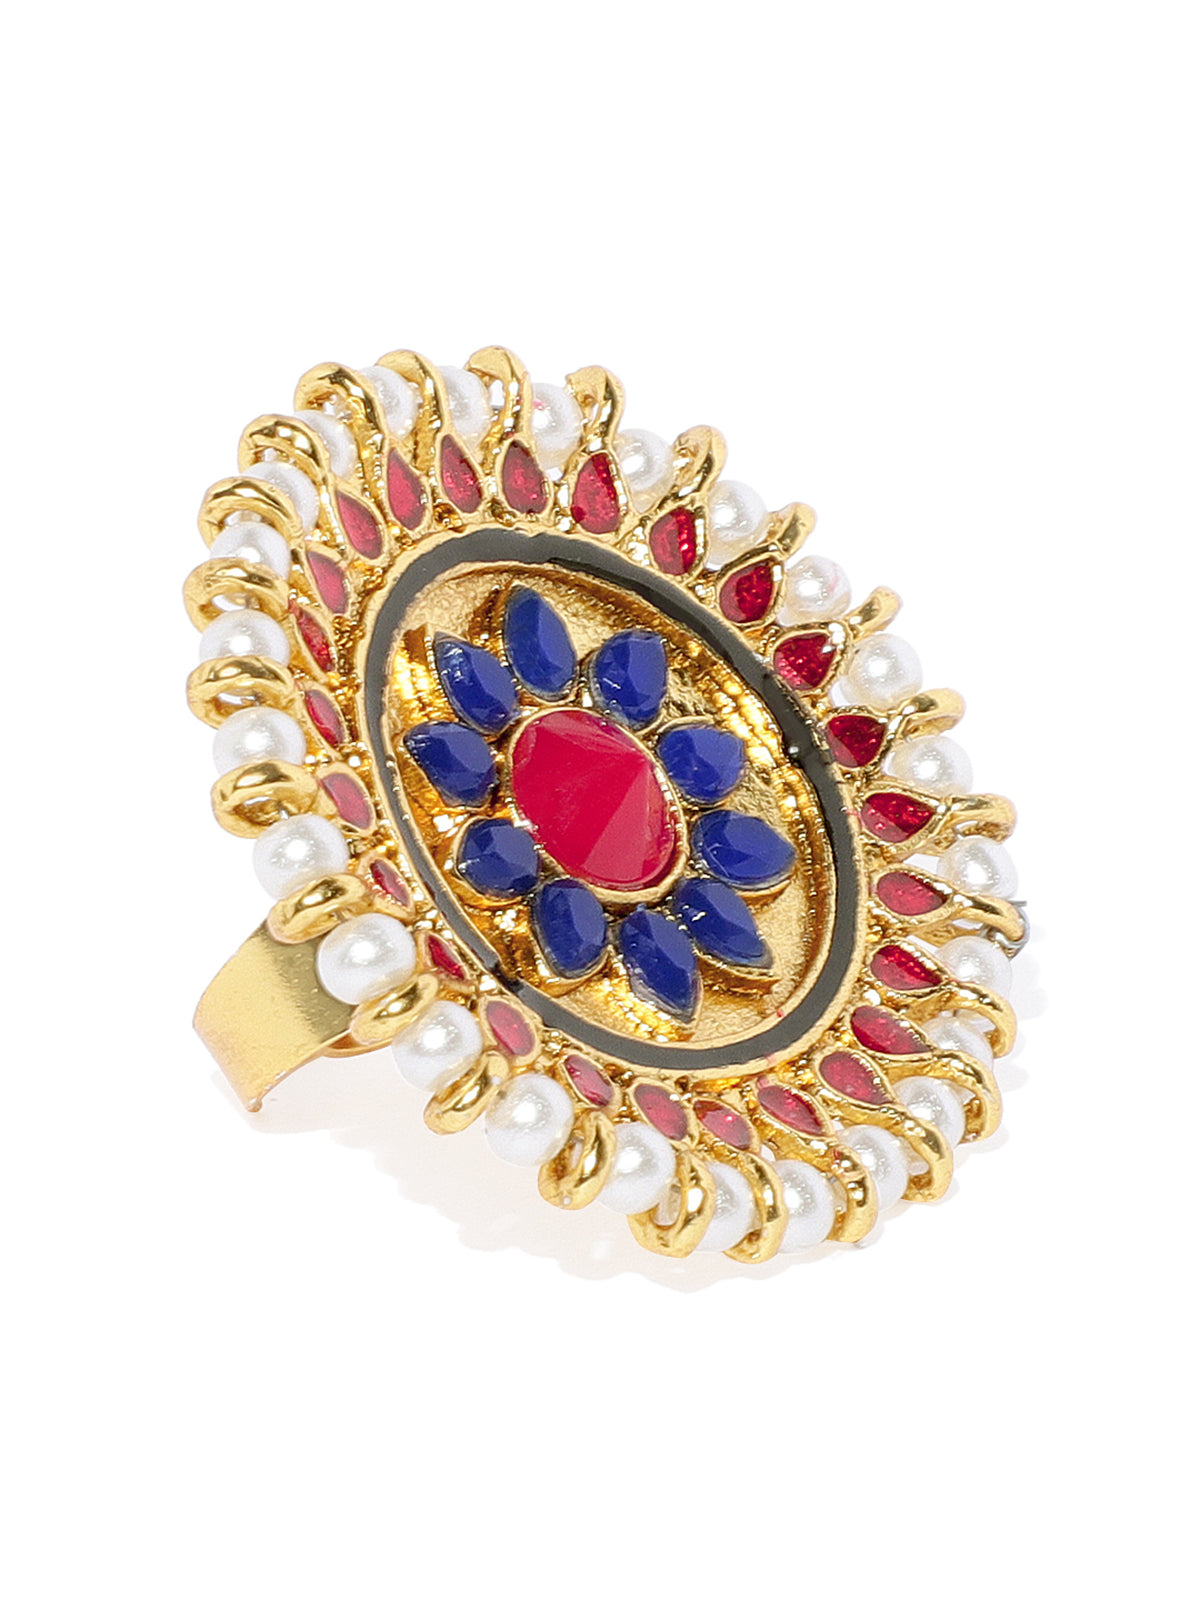 Zaveri Pearls Gold Tone Embellished With Pearls And Meenakari Finger Ring-ZAVERI PEARLS1-Finger Ring